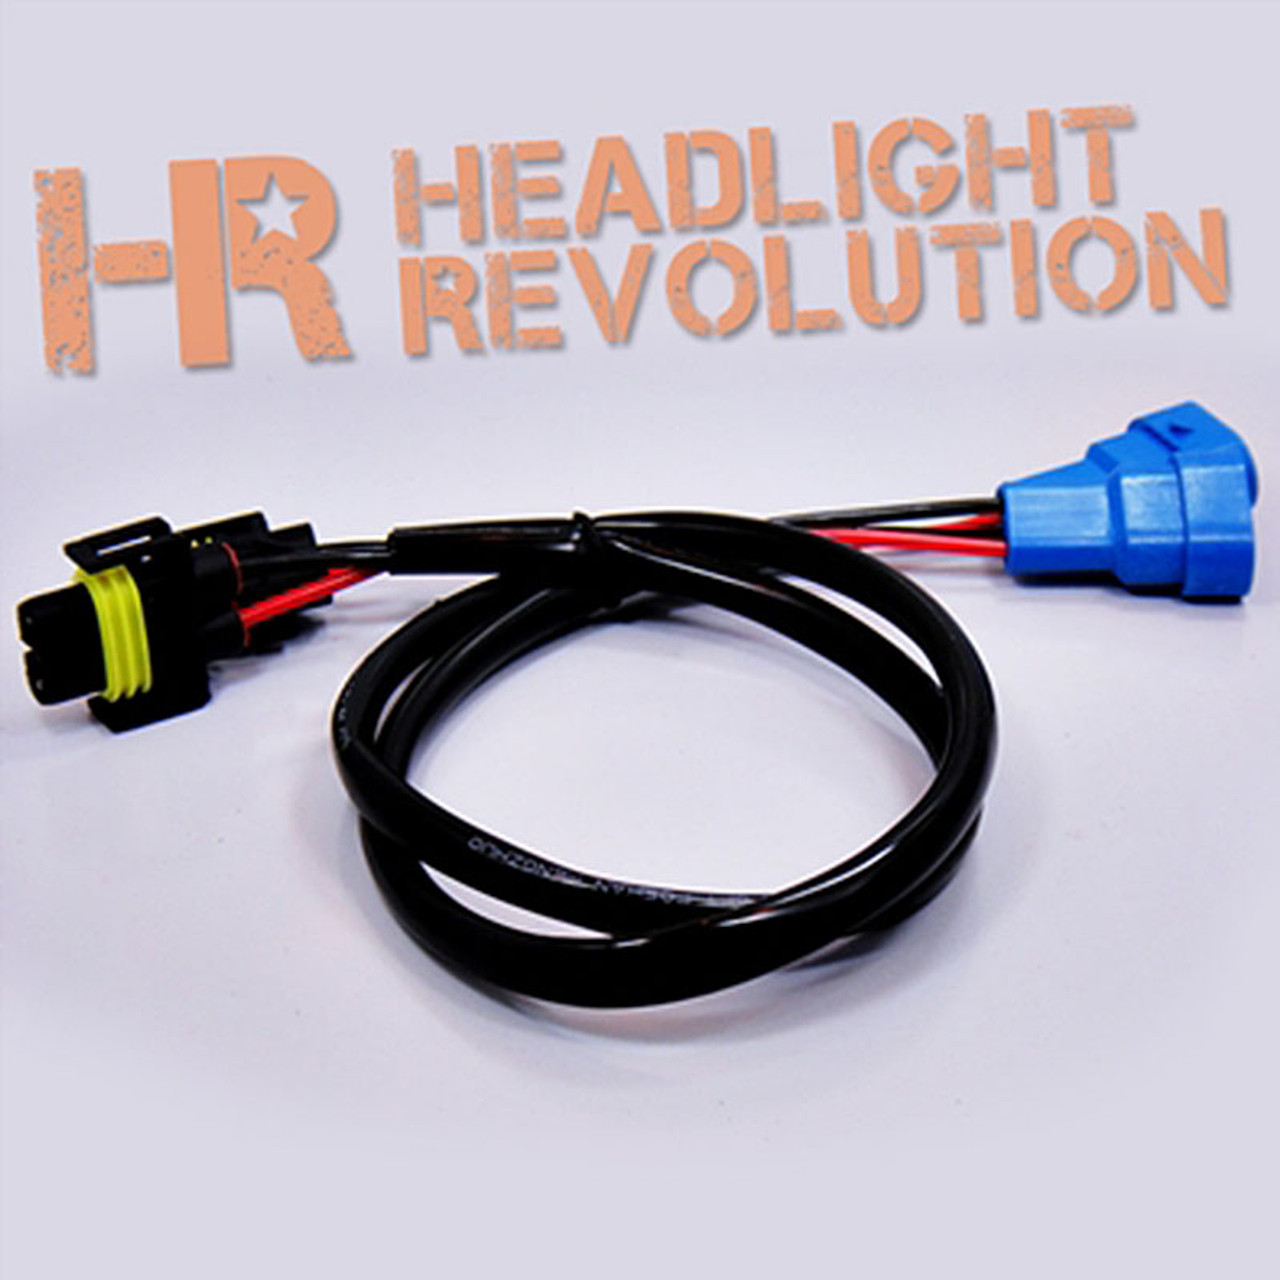 Headlight Revolution H11 into 9005 Wire Harness Adapters on